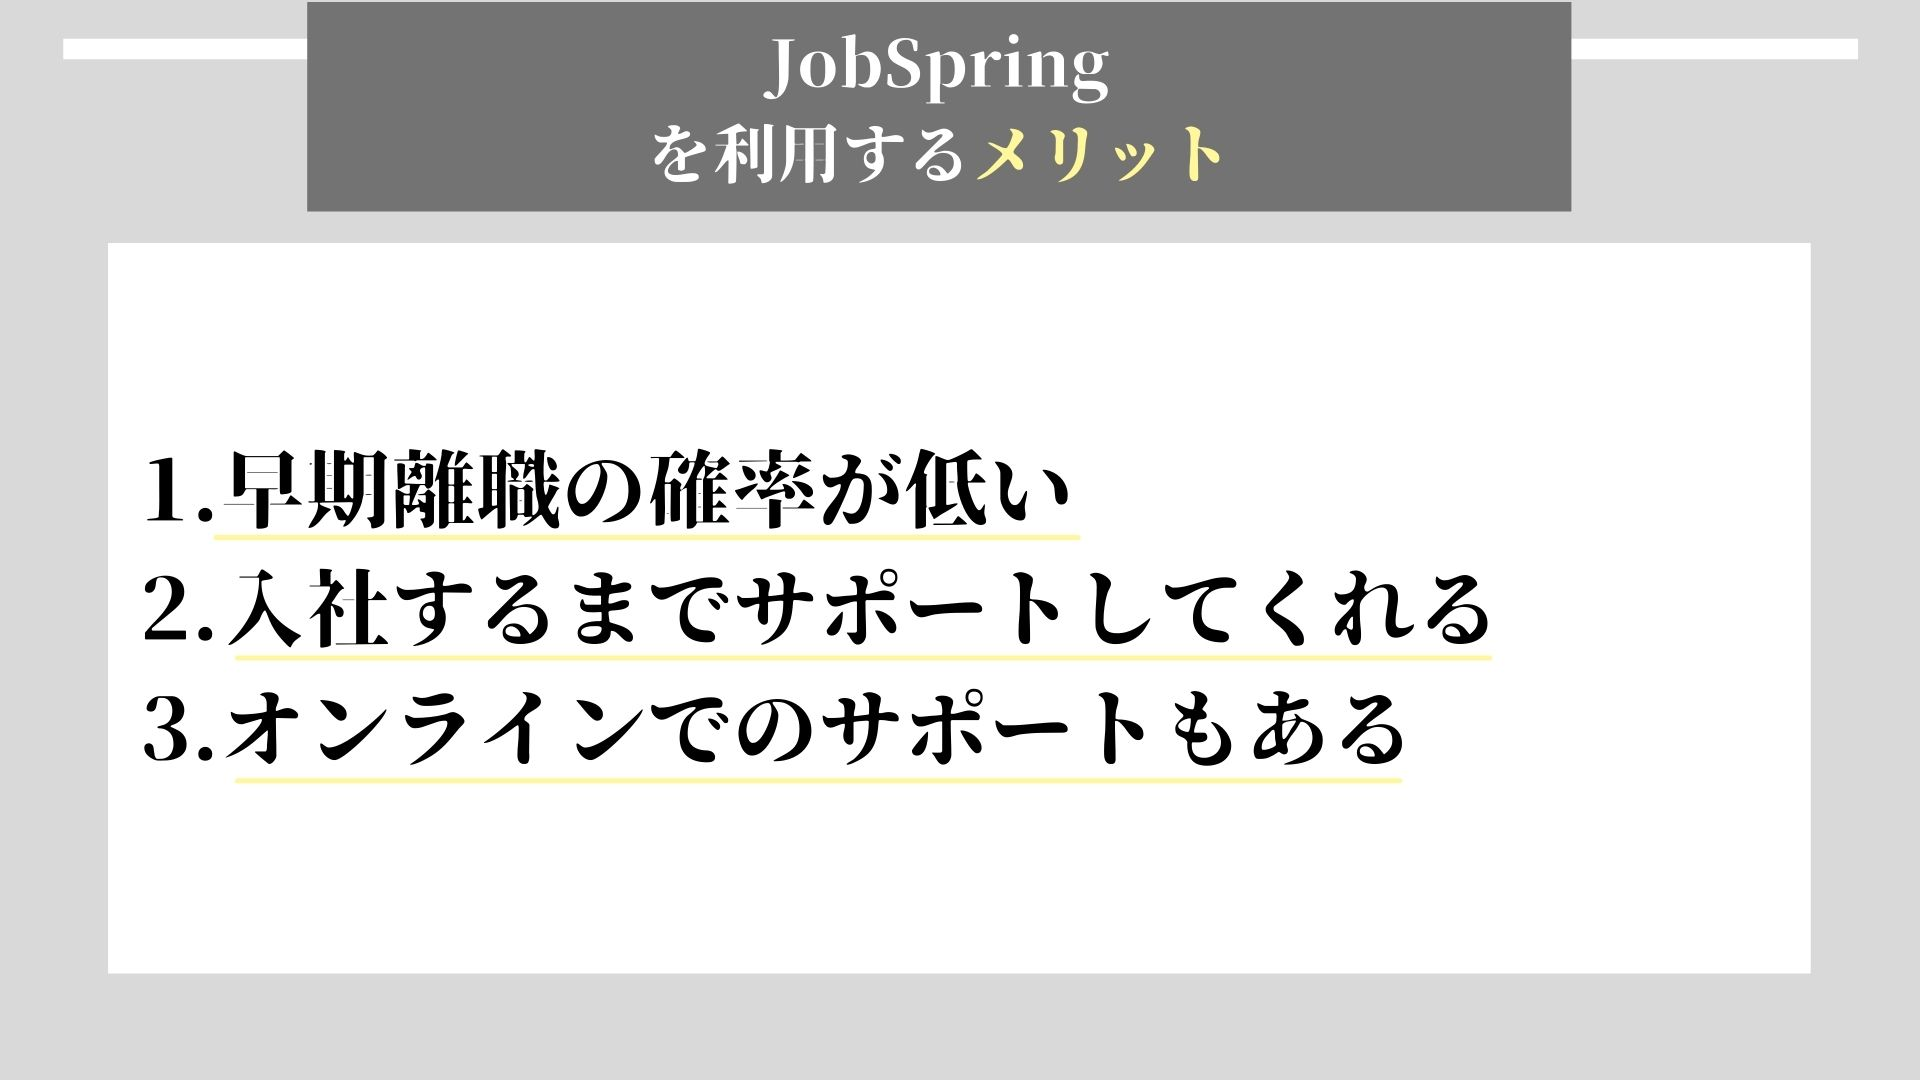 JobSpring メリット